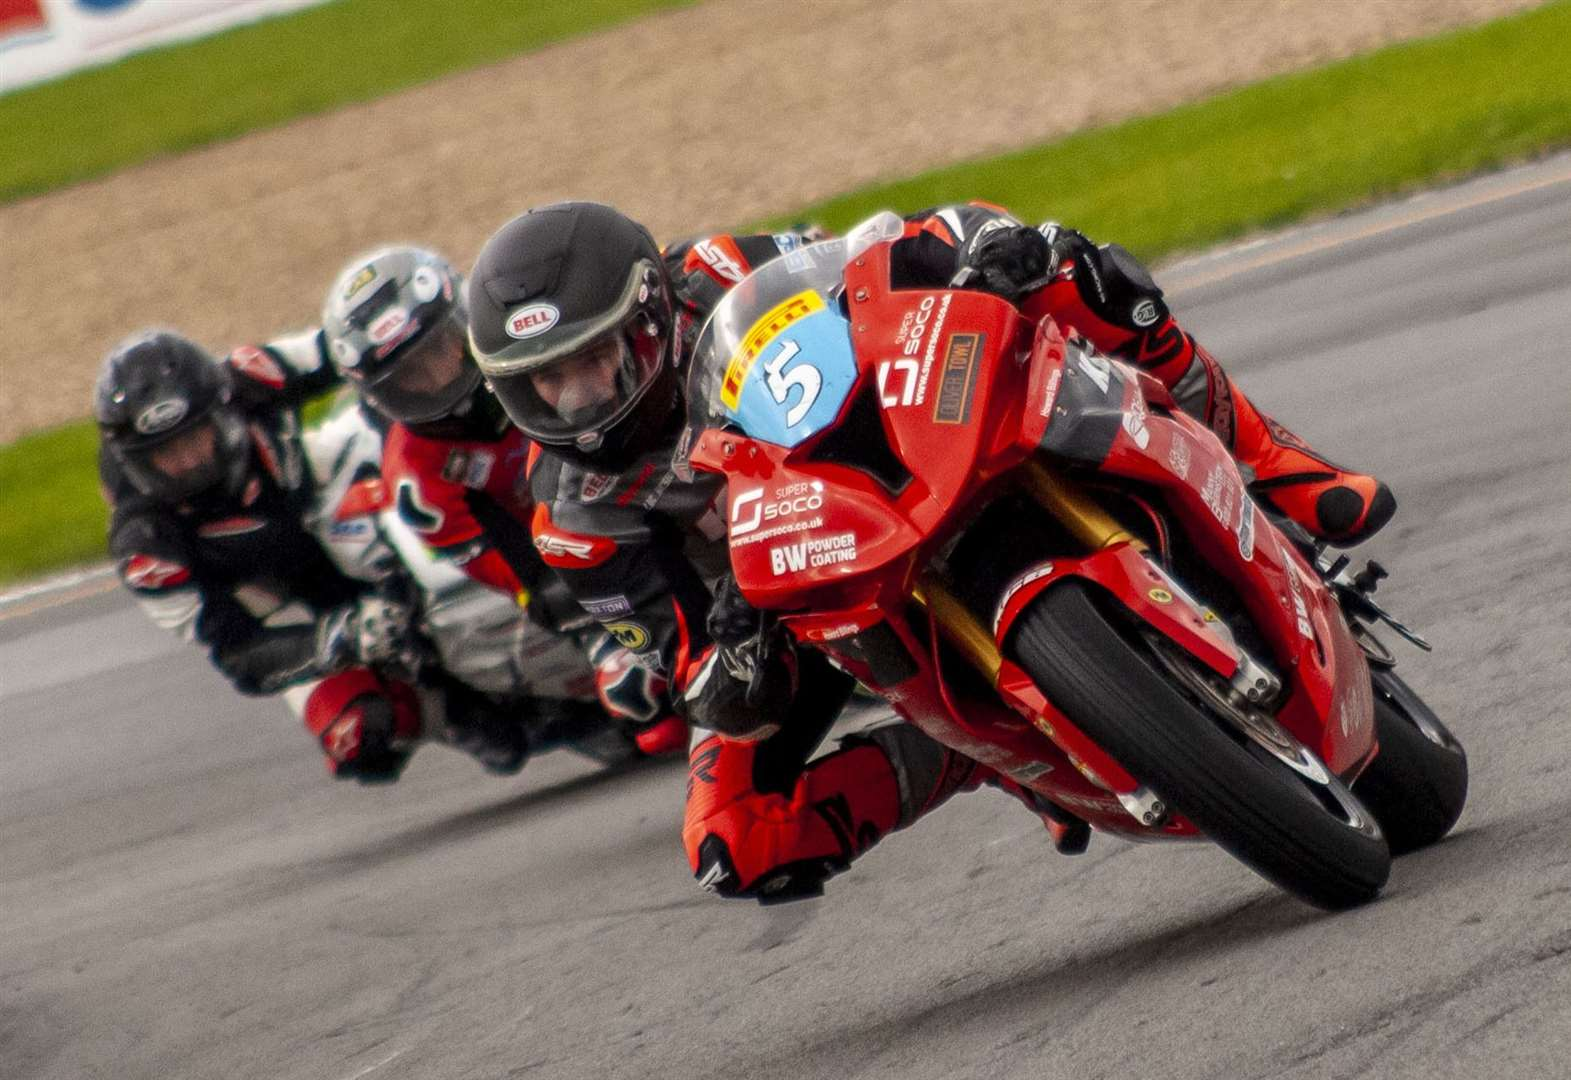 MOTORCYCLING: Sweet 16 for Aaron at Donington Park